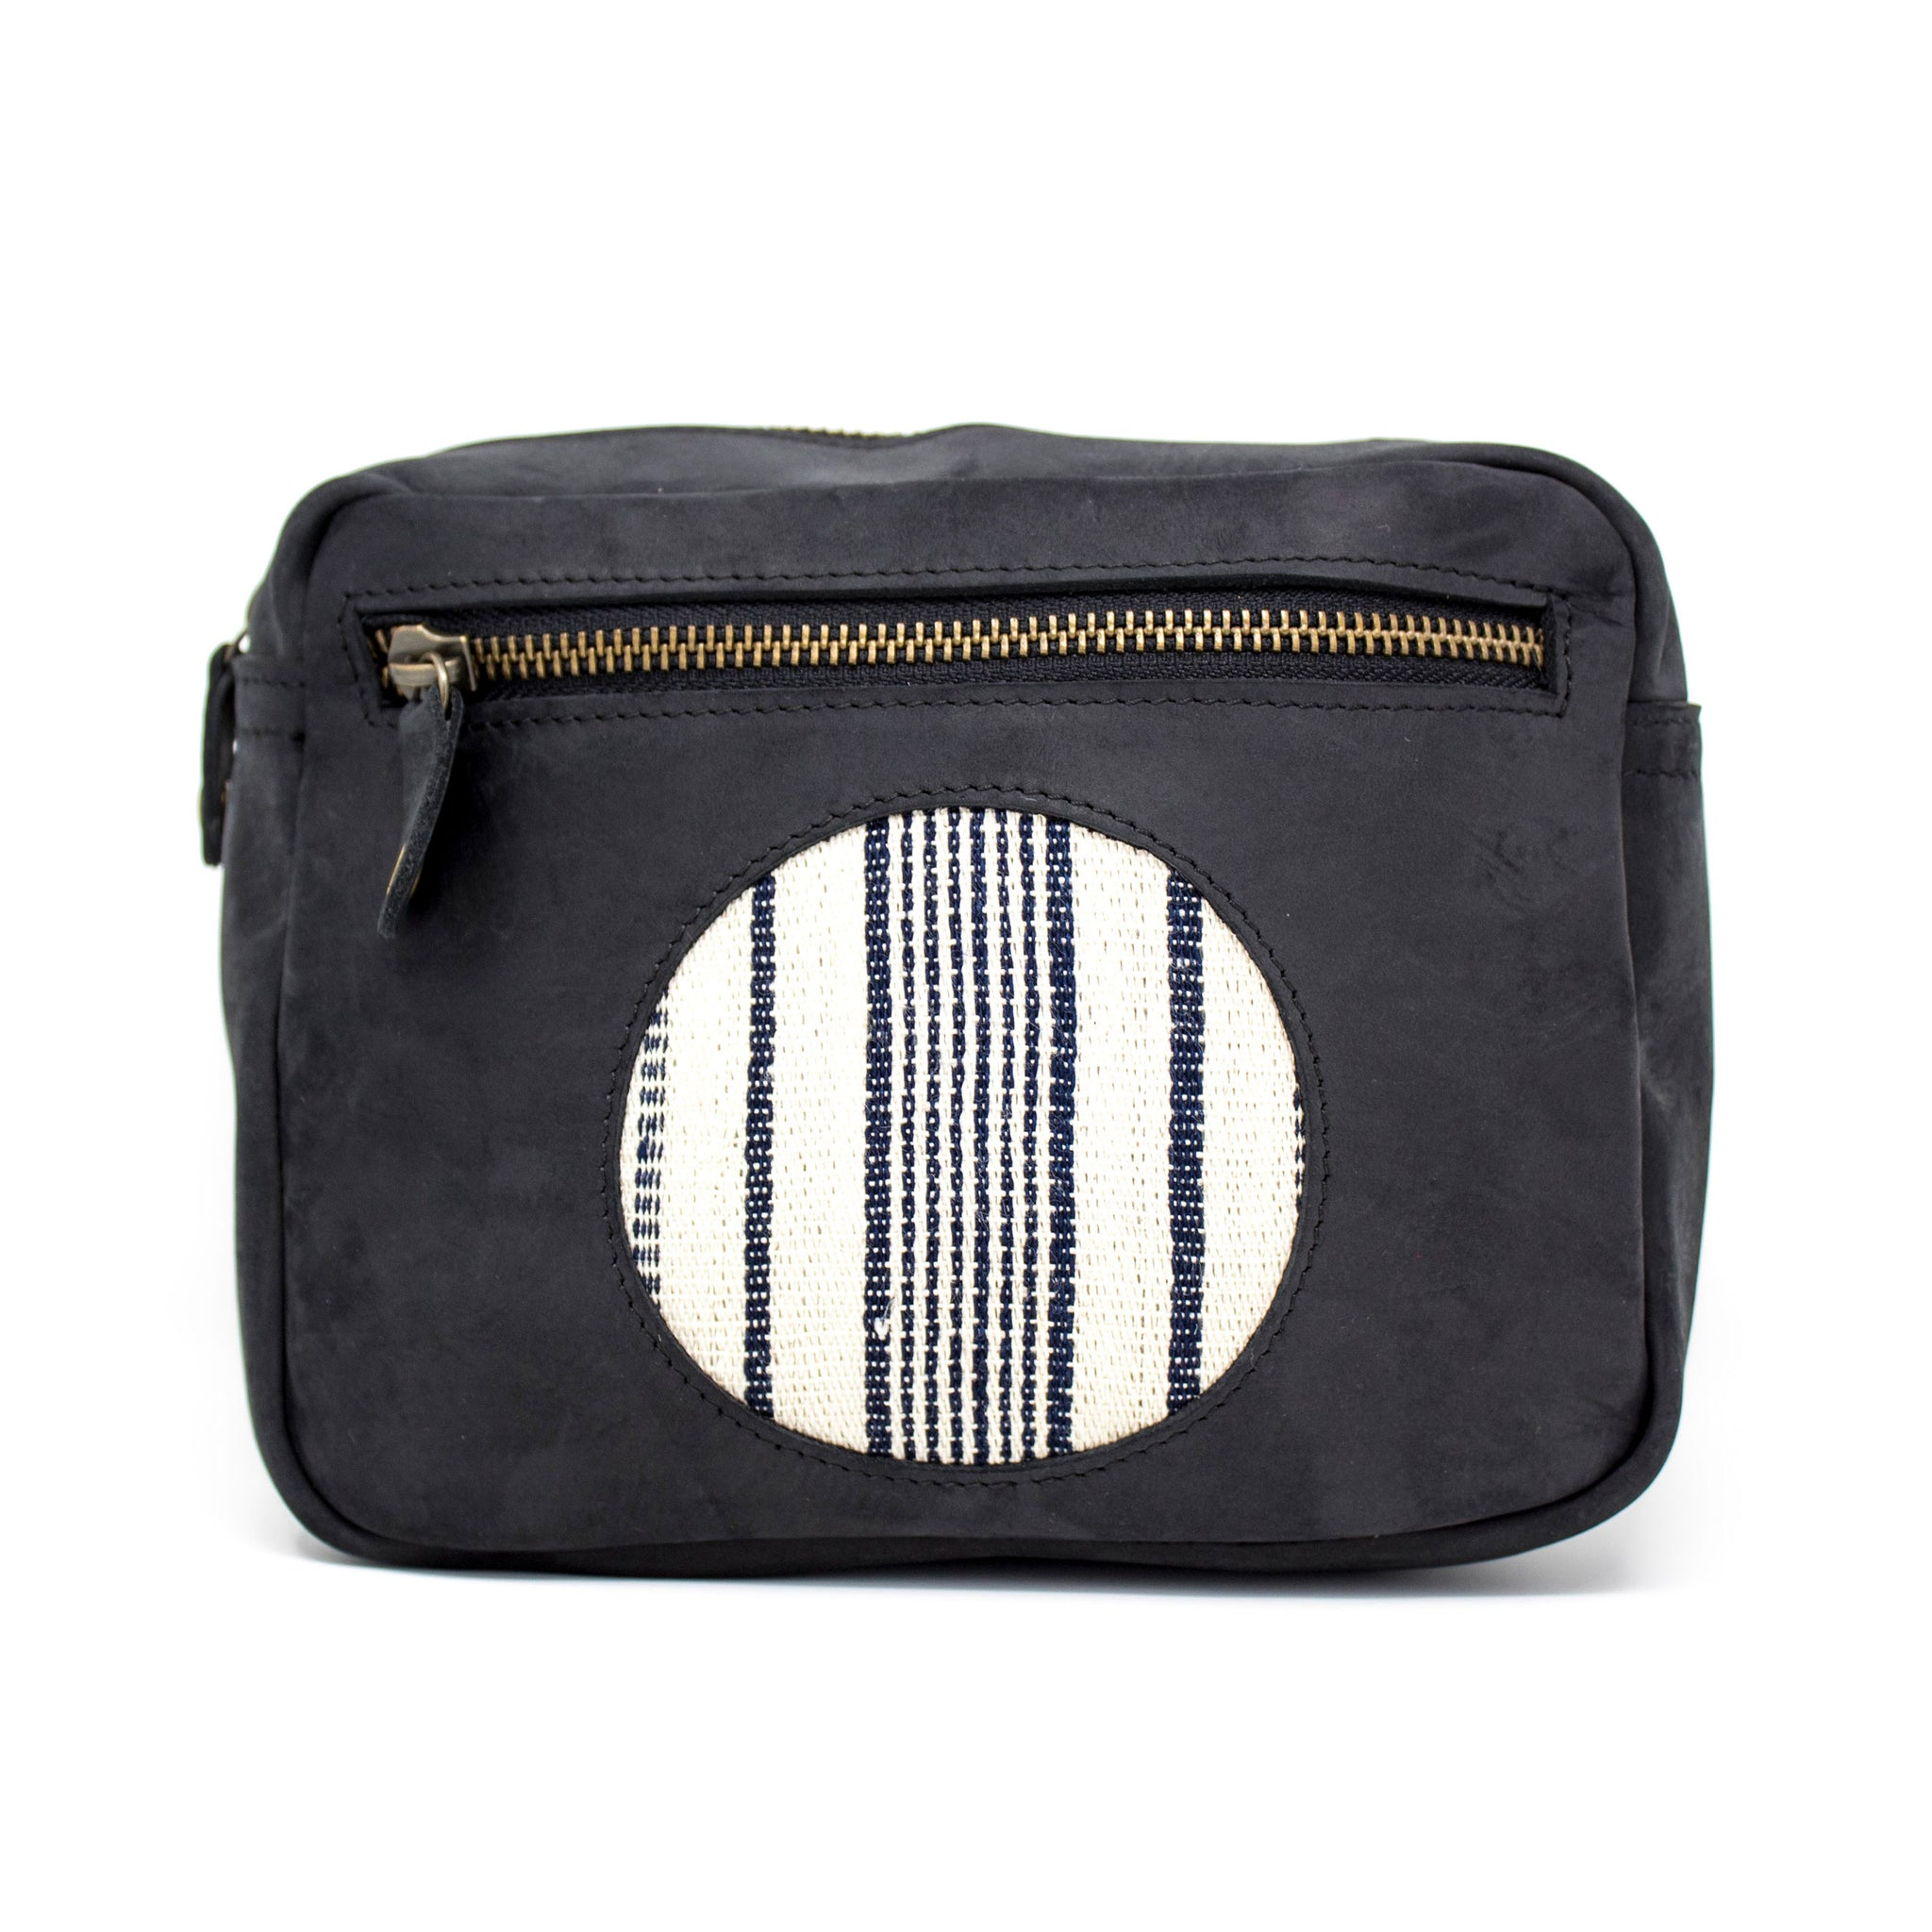 Heli Crosspack: Black Nubuck + Cream / Navy Striped Country Cloth